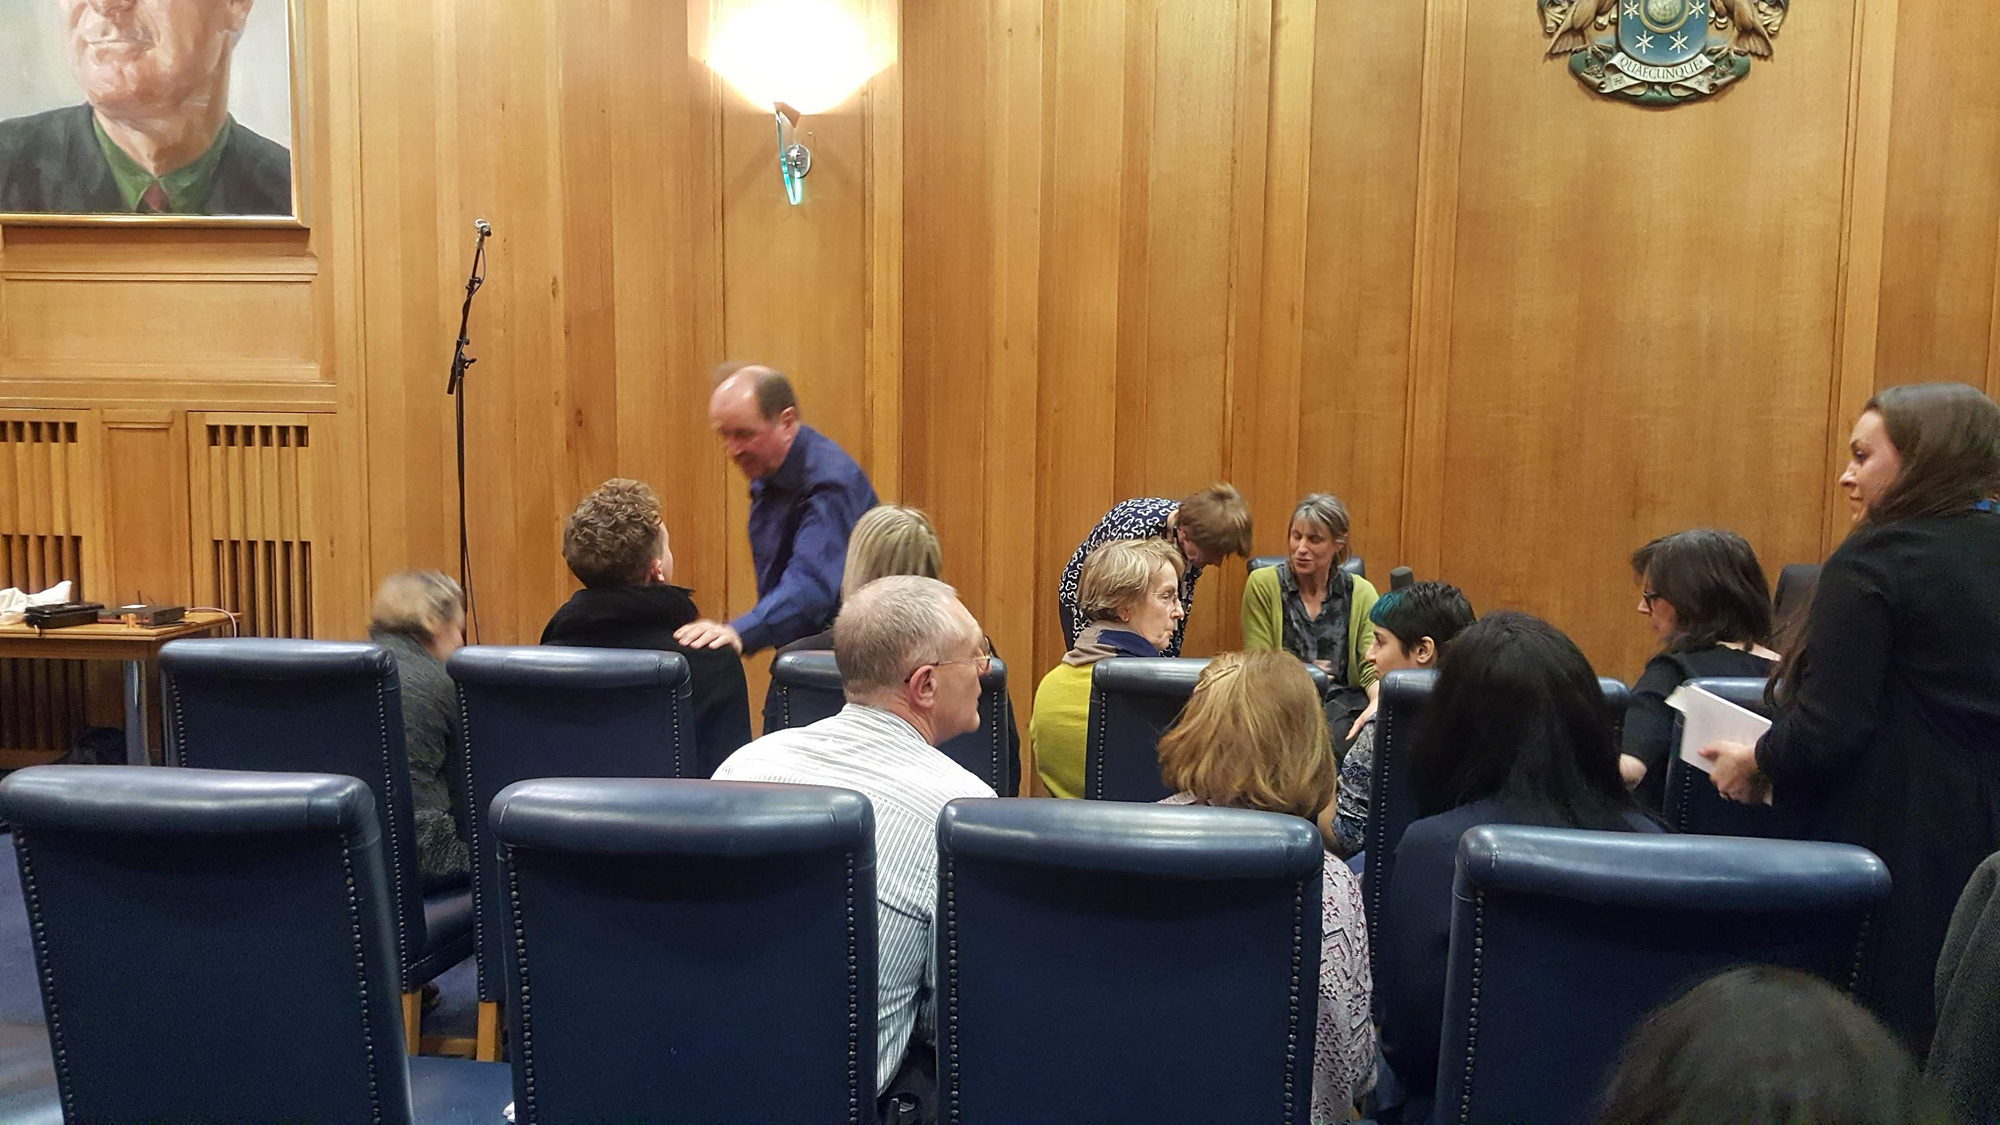 BBC Council Chamber Book Club recording